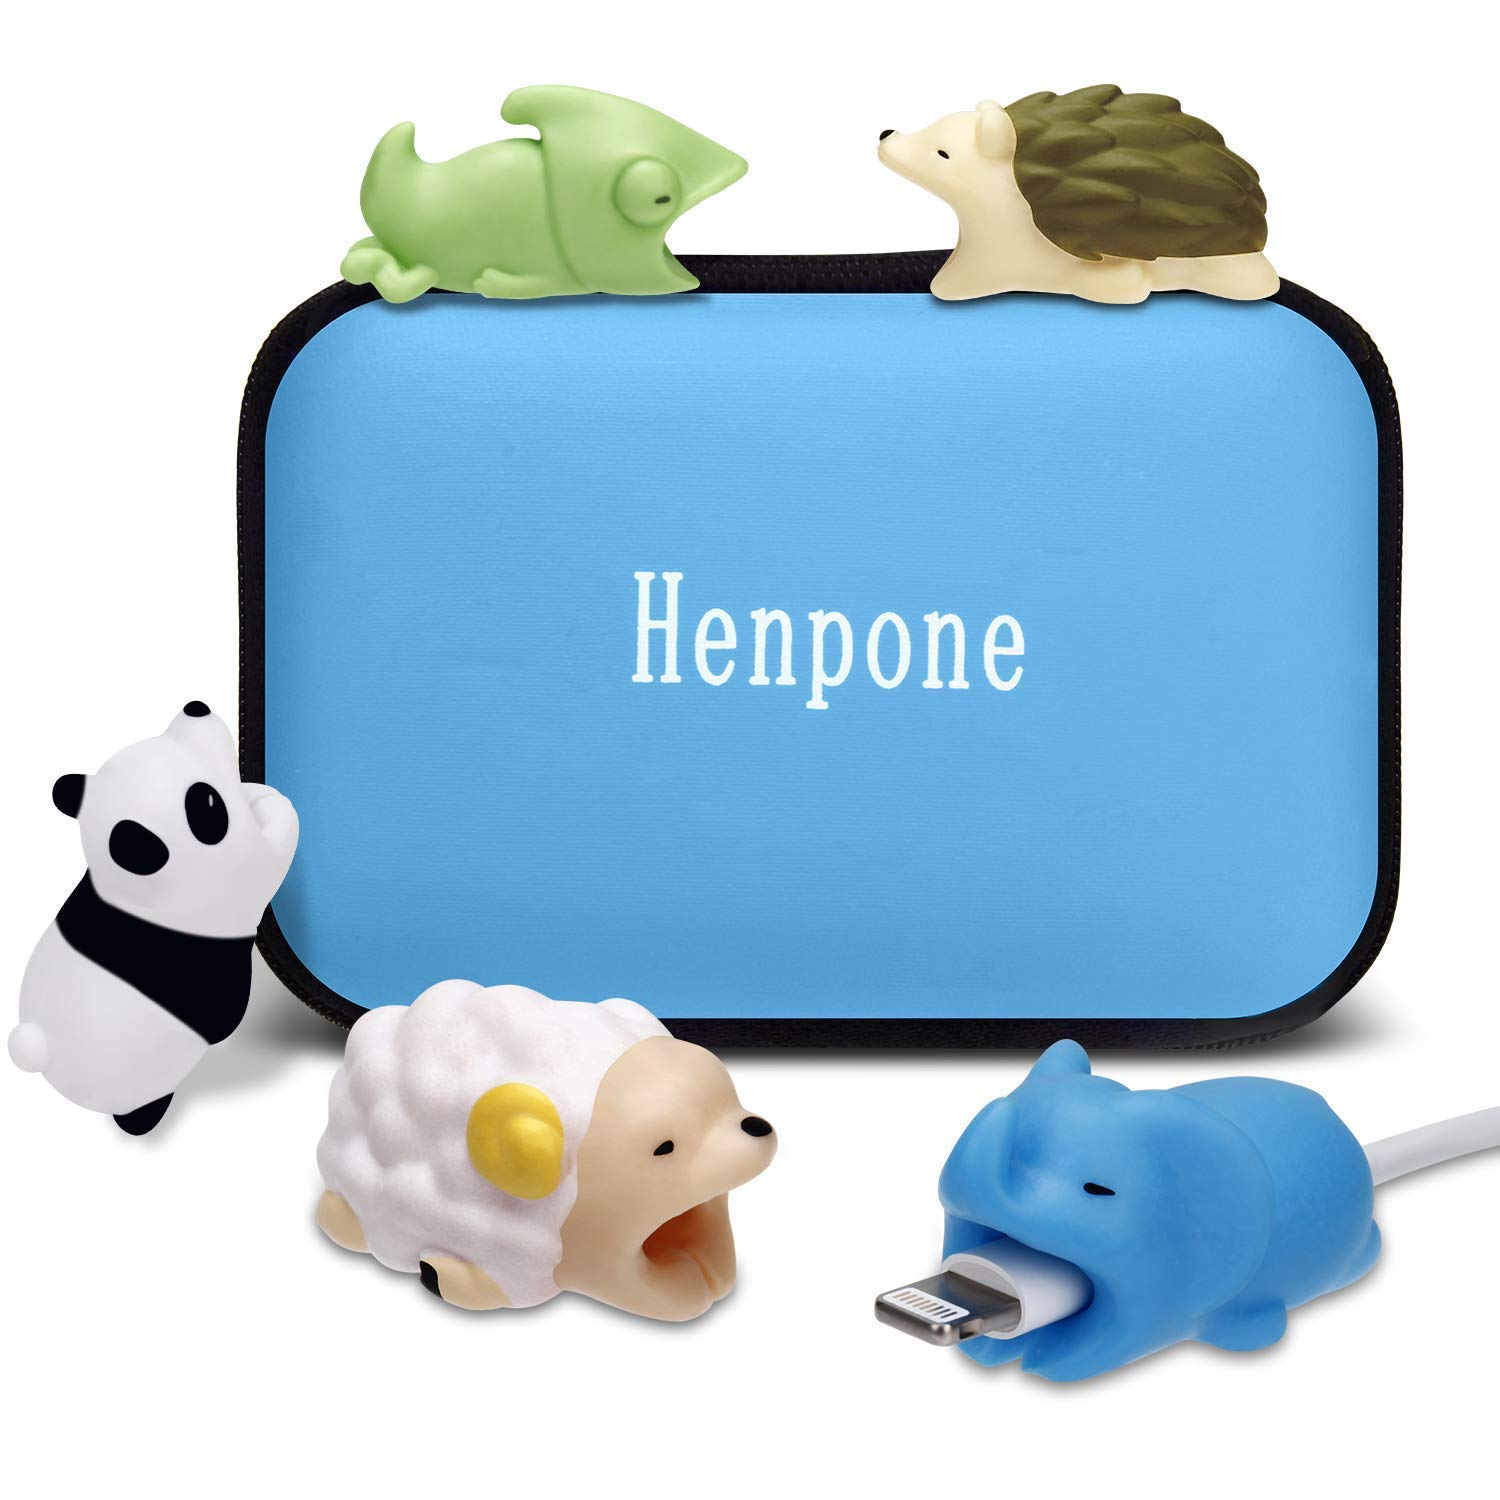 Henpone 5PCS Cute Animal Cable Bites (Panda + Chameleon + Hedgehog +Sheep + Elephant) Compatible for iPhone Cable Bite Cord Data Line Protector Cell Phone Accessories